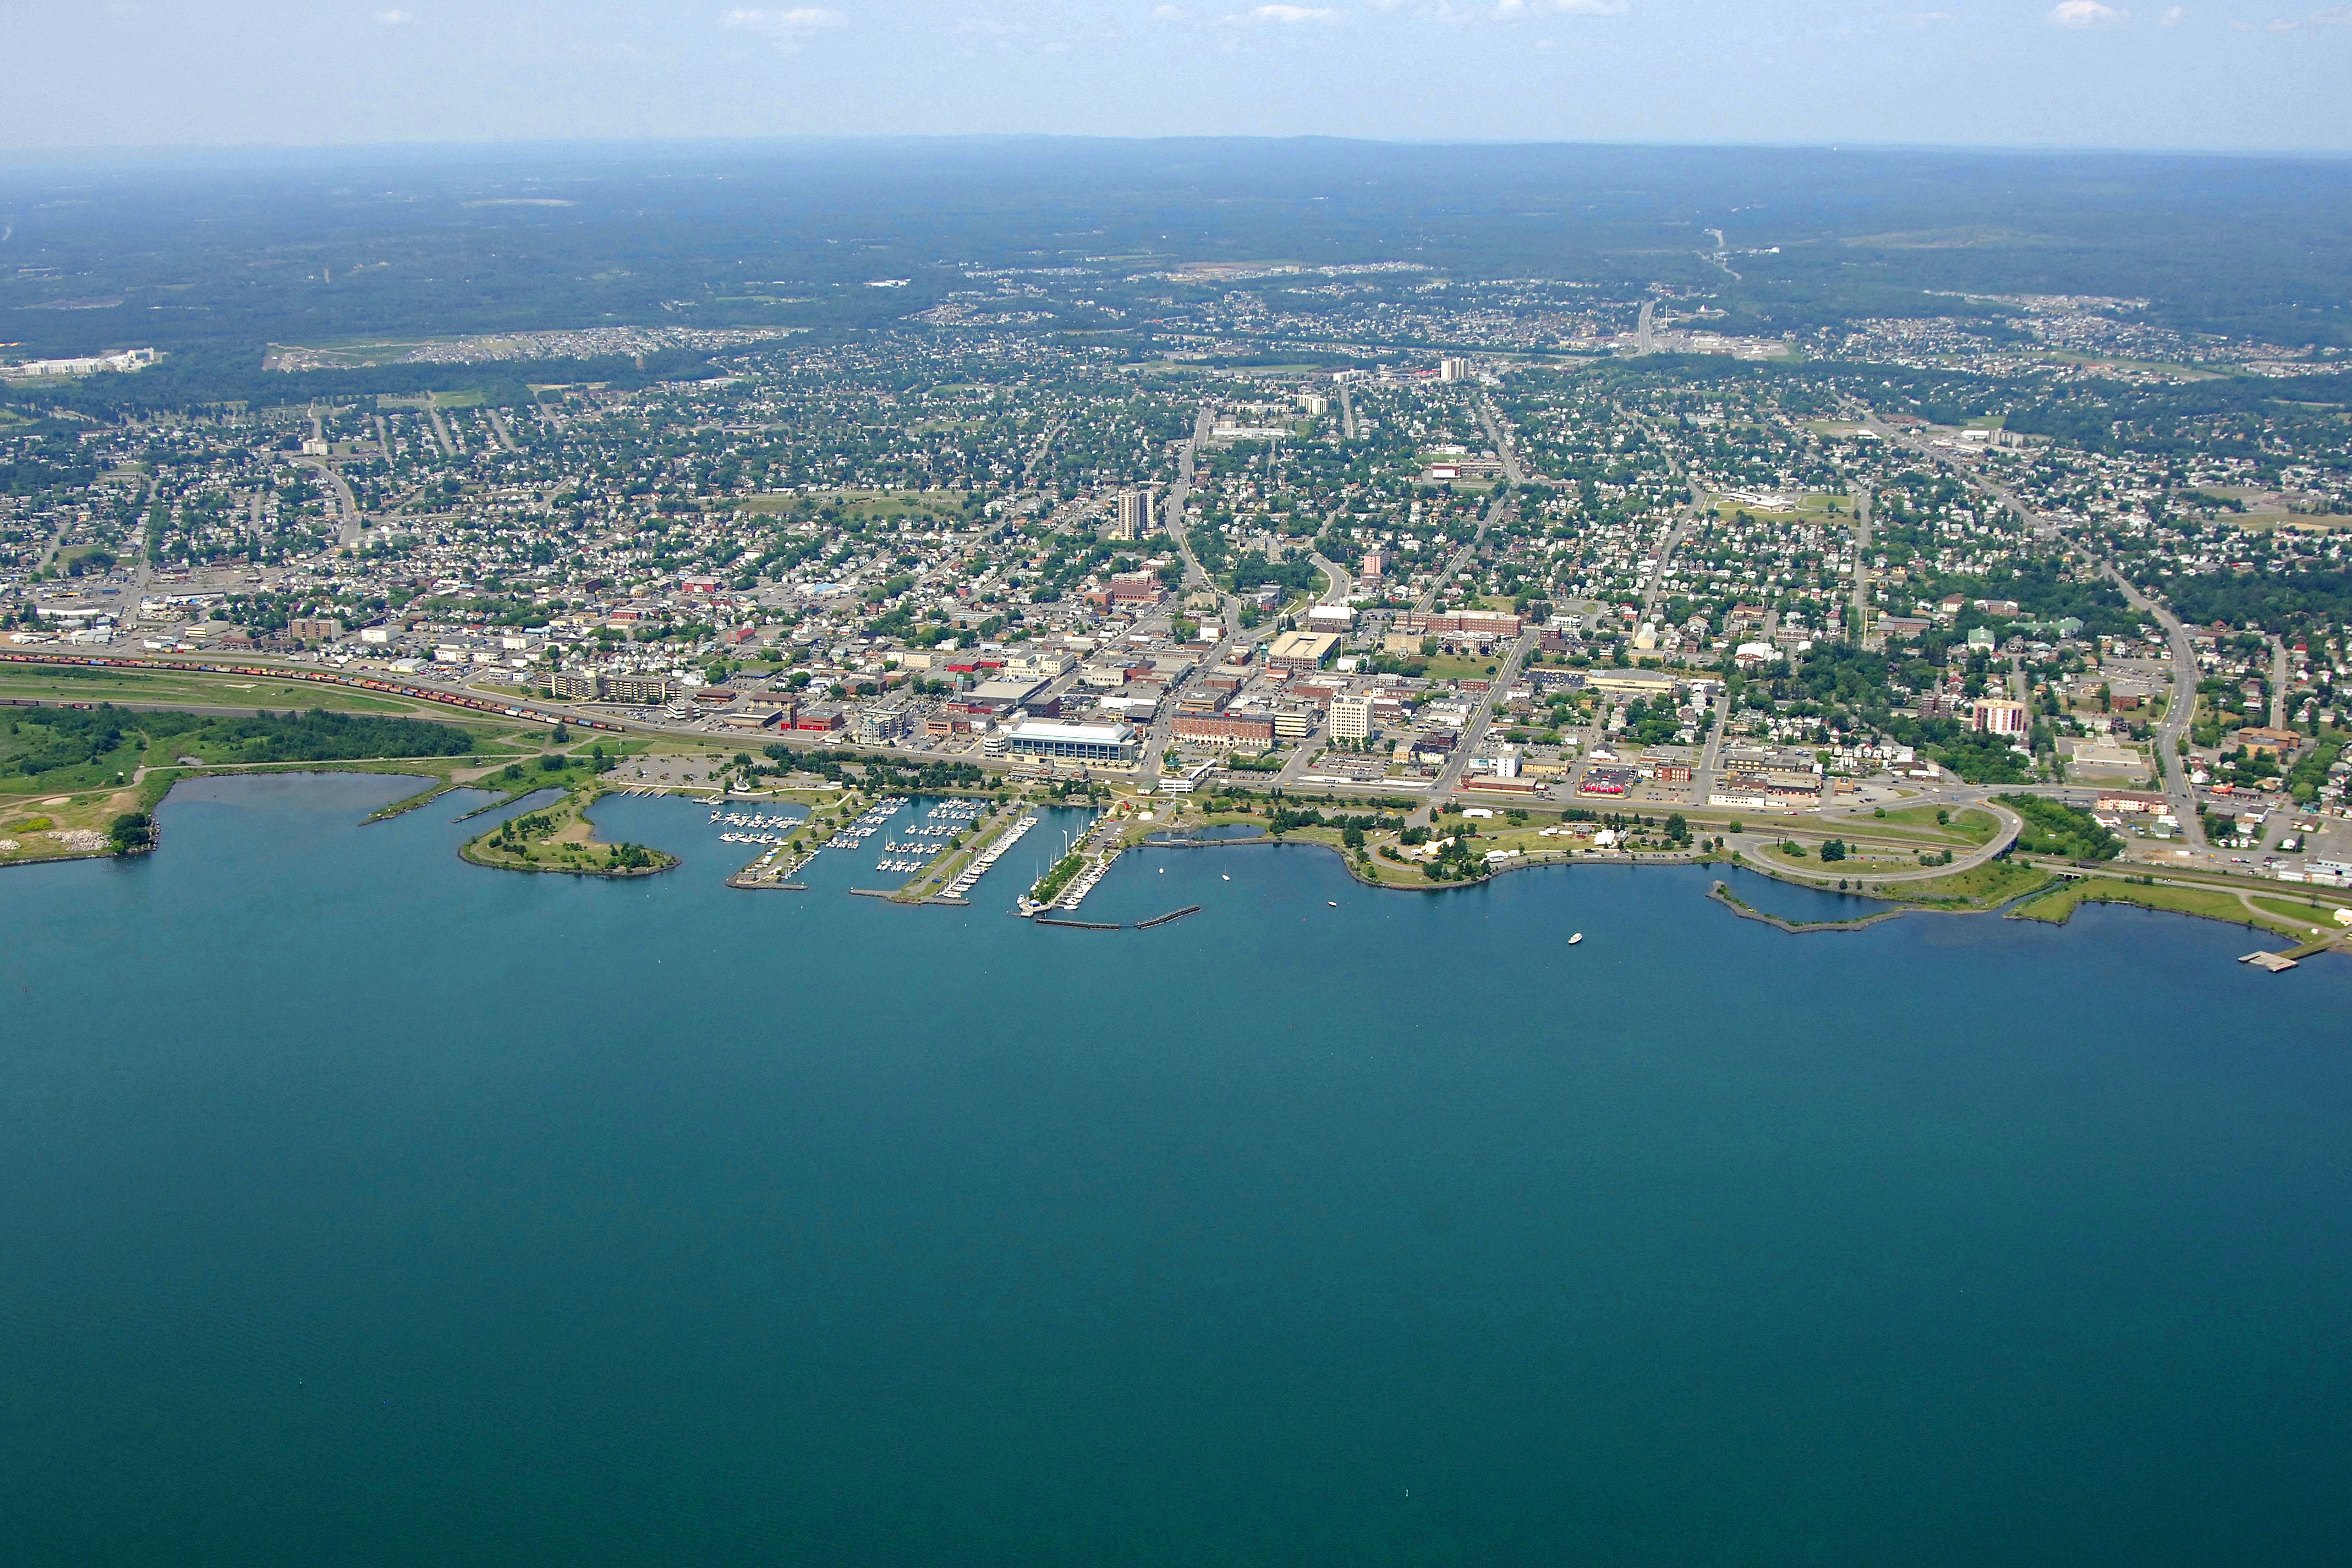 Canada: Political candidates in Thunder Bay discuss Basic Income